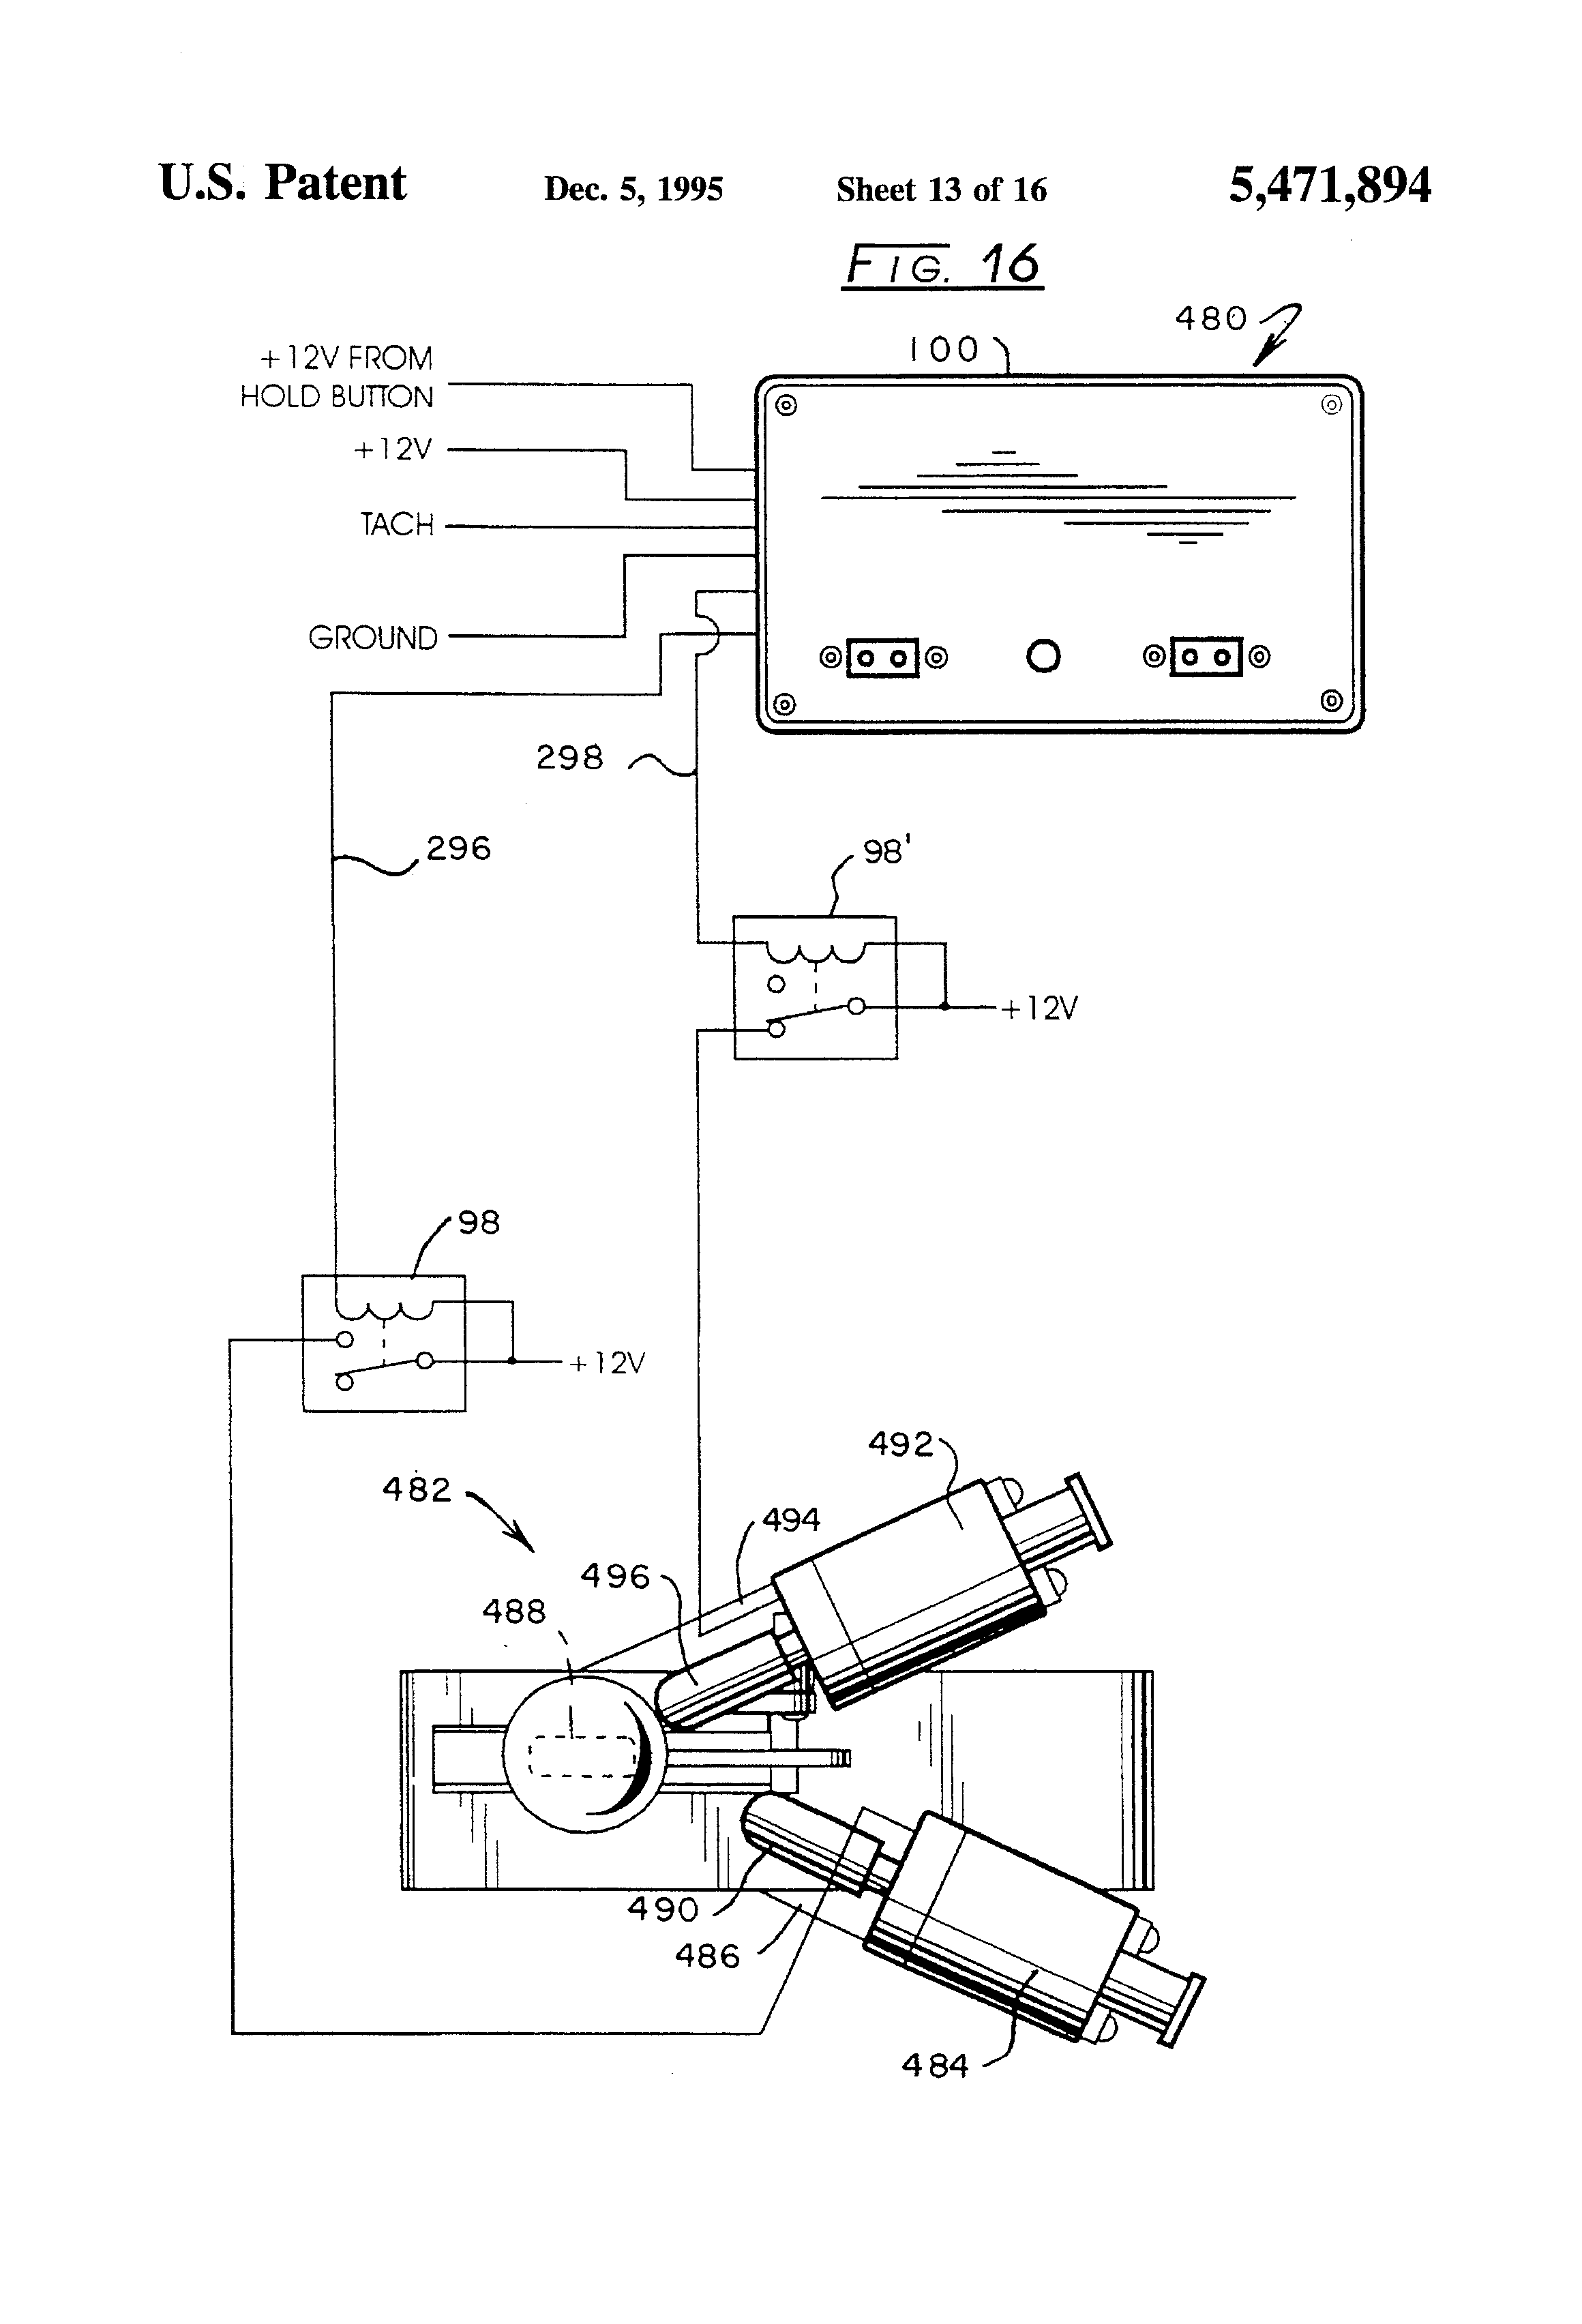 Patente US5471894 - Shifting method and controller for controlling on holley wiring diagram, accel wiring diagram, aem wiring diagram, piaa wiring diagram, msd box wiring diagram, delay box wiring diagram, dynatech wiring diagram, flex-a-lite wiring diagram, derale wiring diagram, powermaster wiring diagram, meziere wiring diagram, lokar wiring diagram, time delay switch wiring diagram,